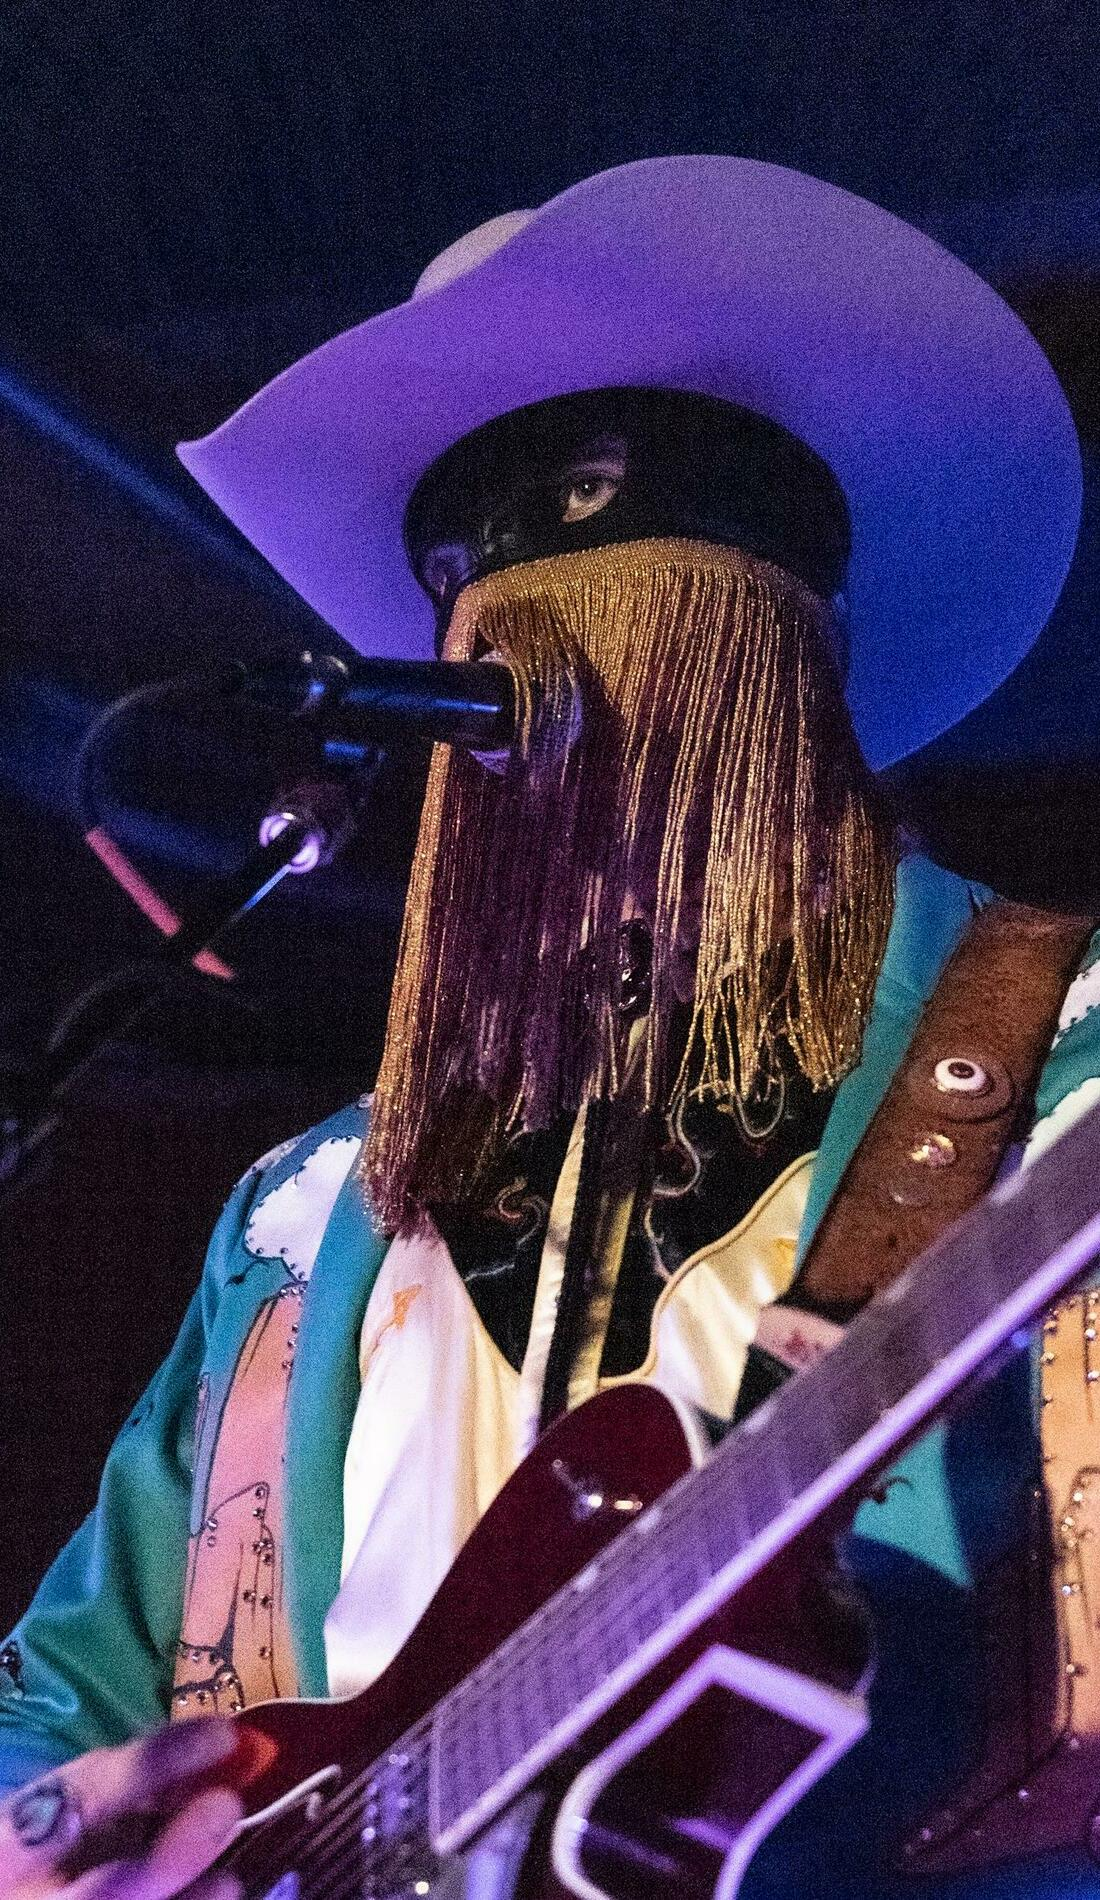 A Orville Peck live event